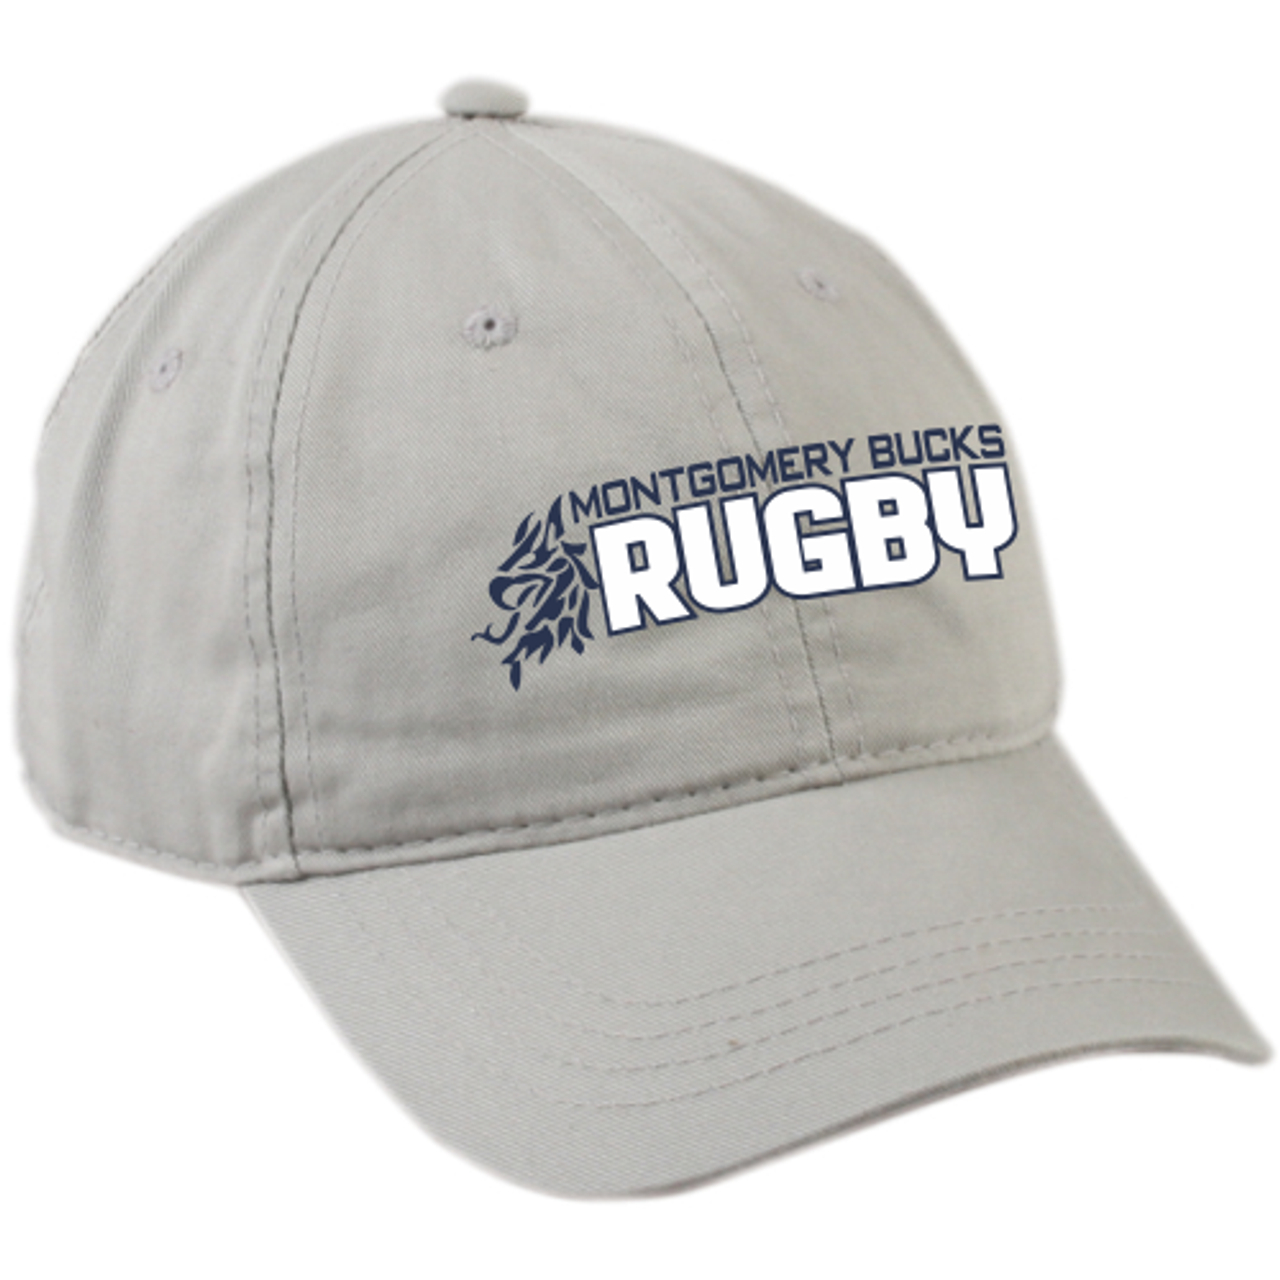 MB Rugby Twill Adjustable Hat, Light Gray